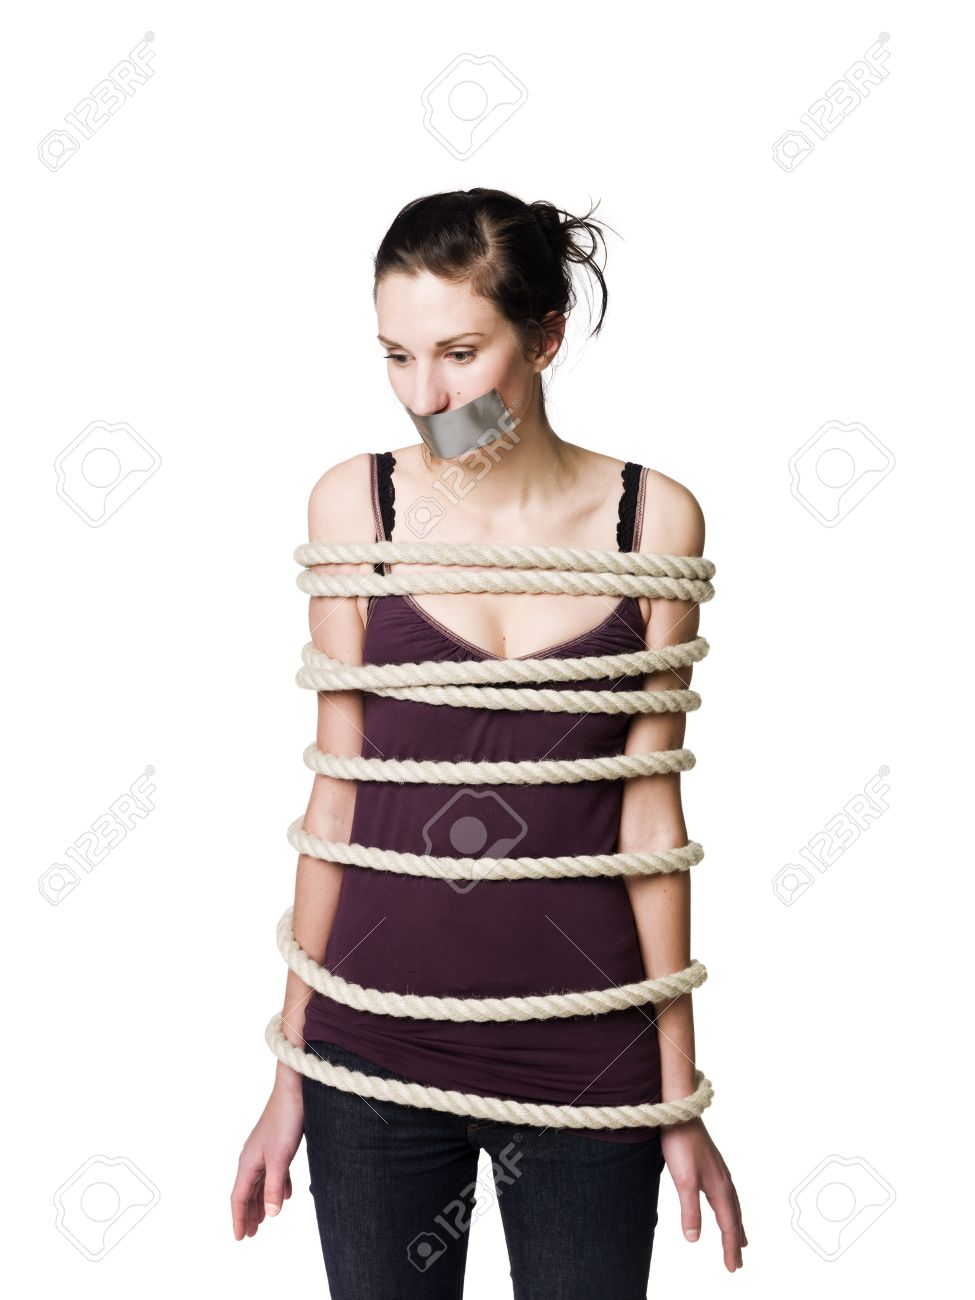 Tied up woman with tape over her mouth Stock Photo - 4396089